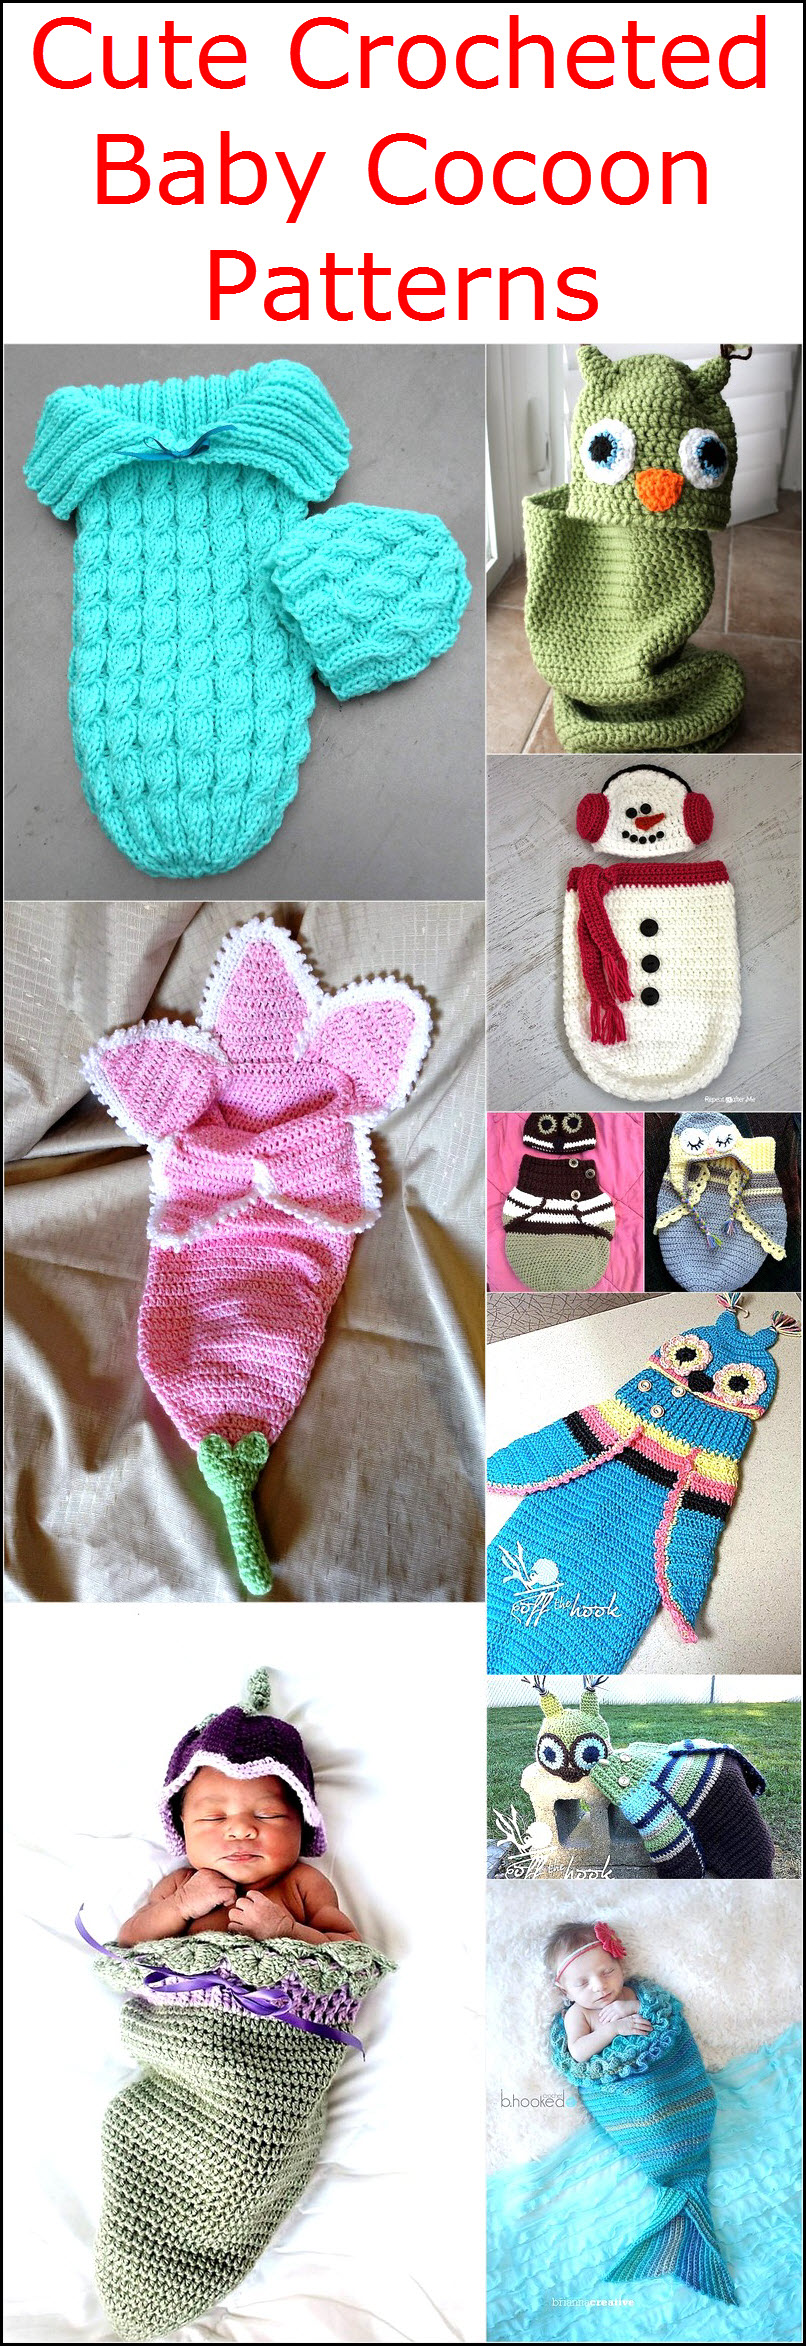 cute-crocheted-baby-cocoon-patterns